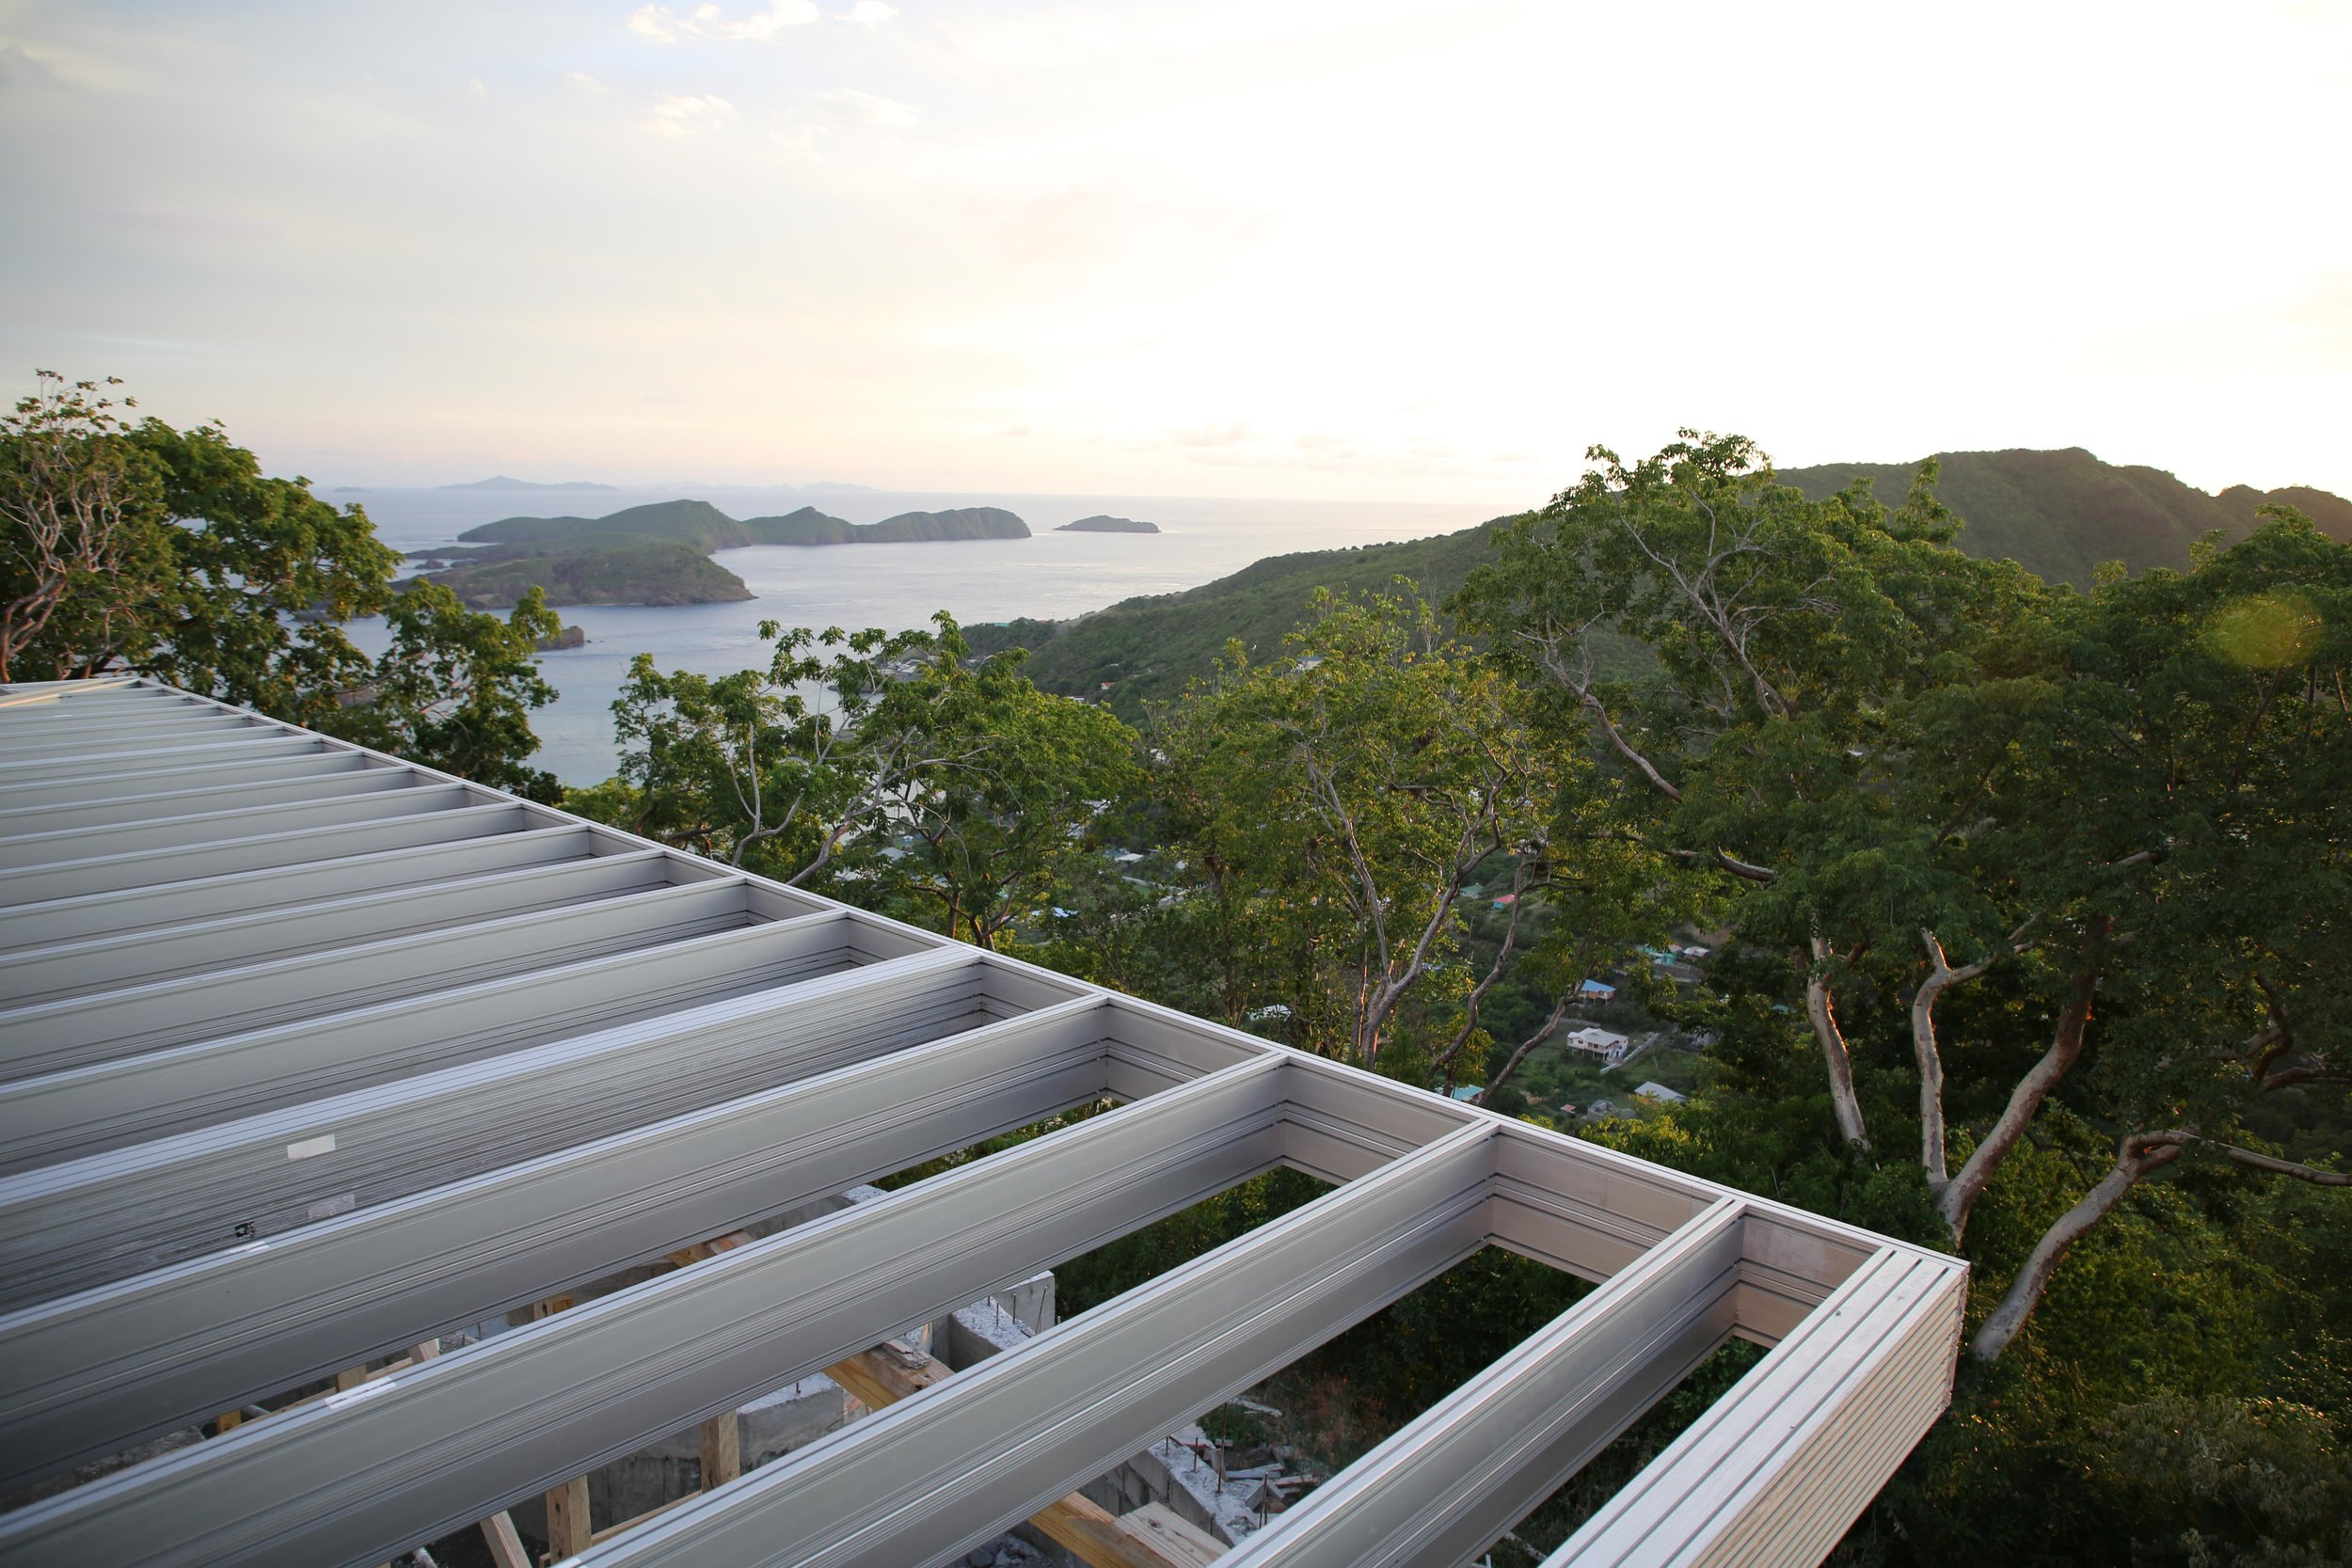 S.E.A.-Studio-Environmental-Architecture-David-Hertz-FAIA-Sail-House-Cloud9-Bequia-Saint-Vincent-Grenadines-Caribbean-Island-sustainable-regenerative-restorative-green-design-hospitality-tropical-resort-hotel-biomimetic-tensile-structure-progress-7.jpg